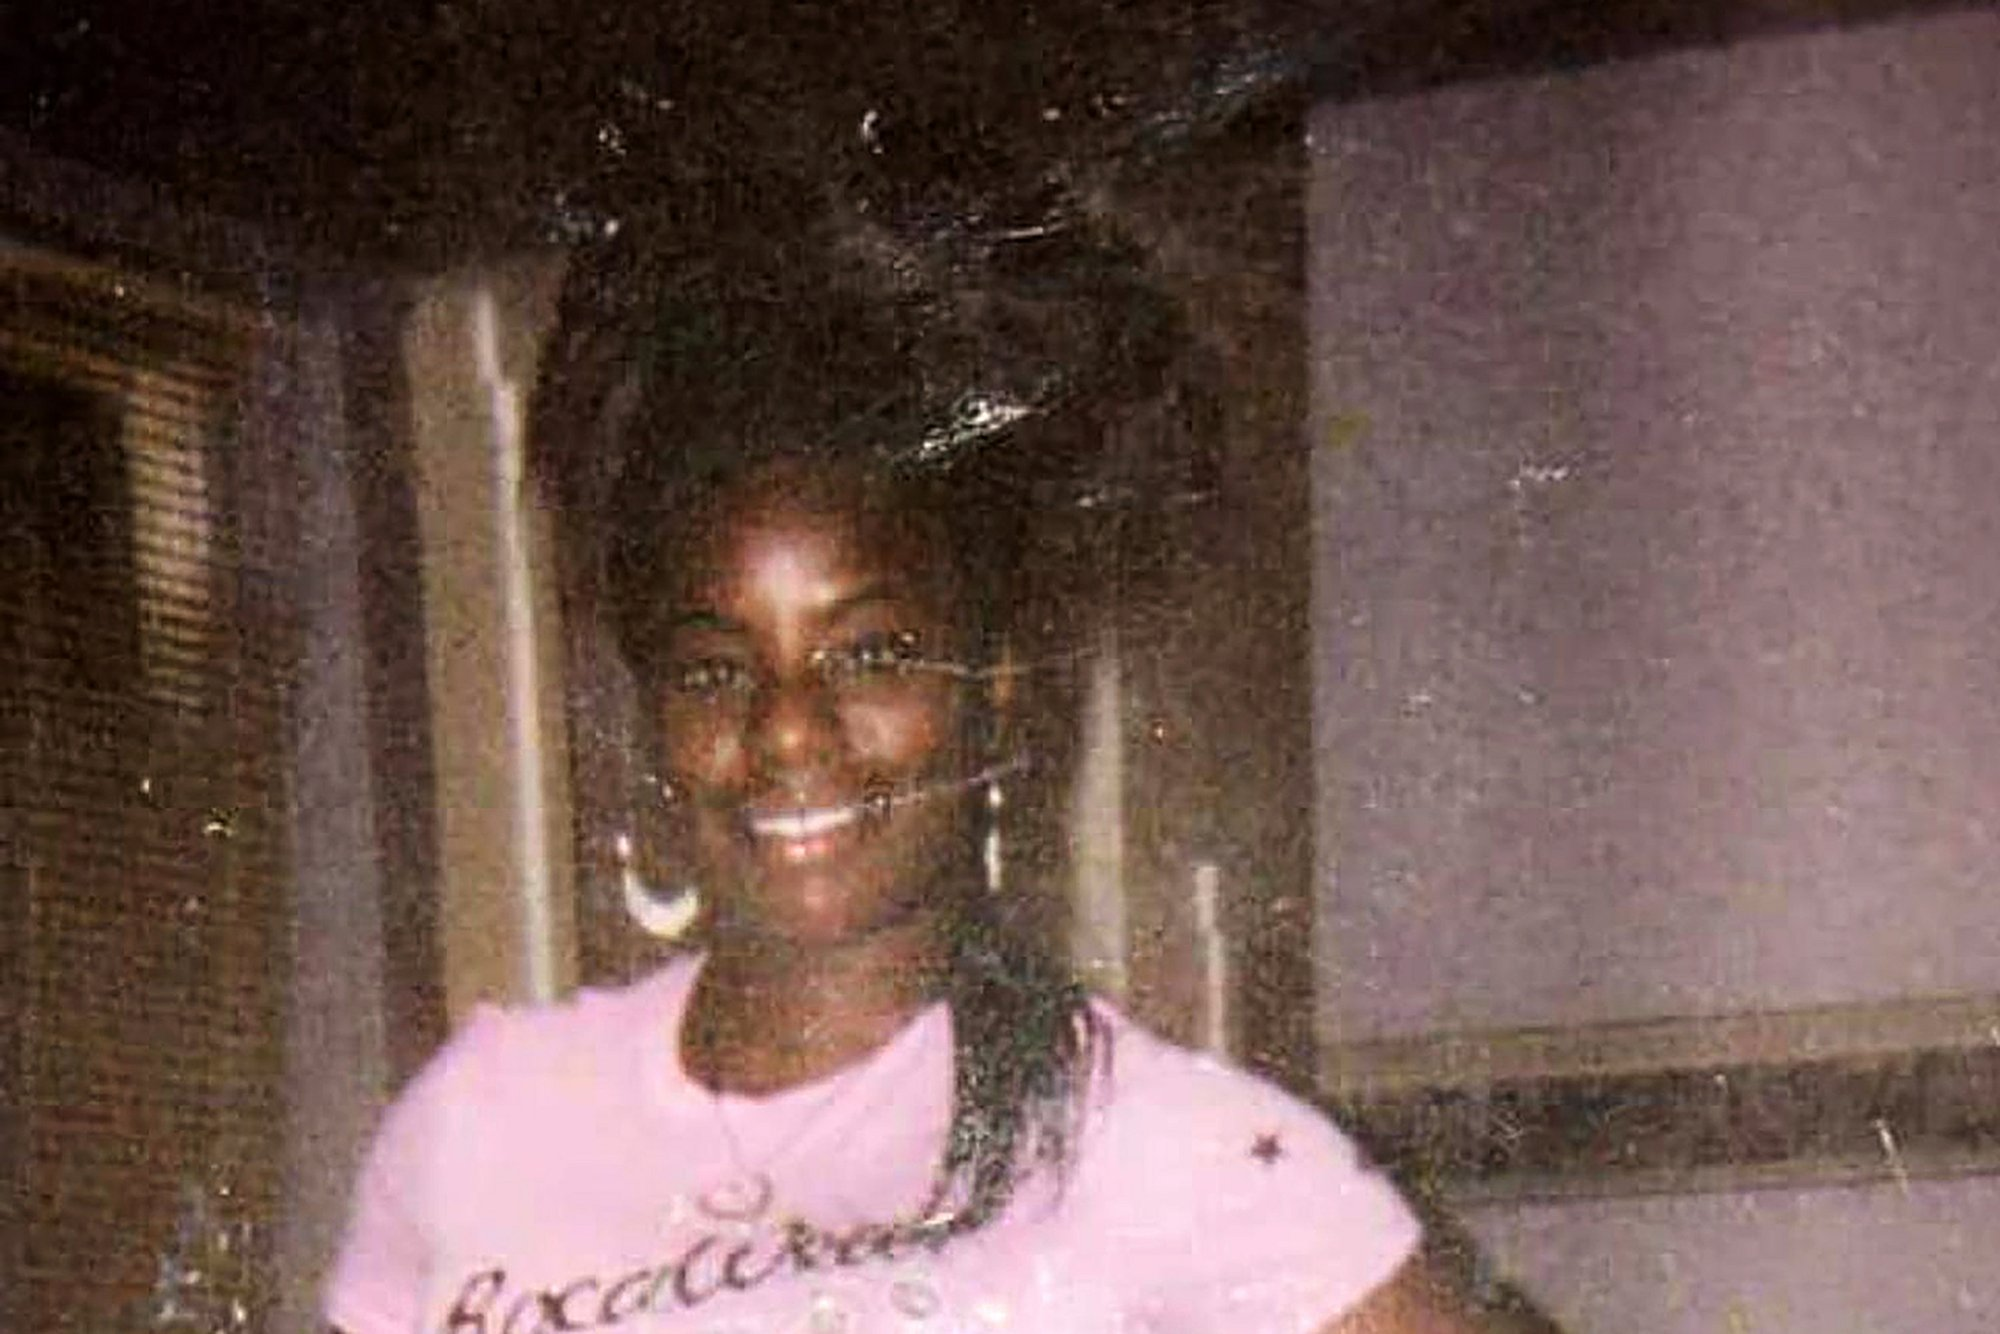 Computer finds striking similarities in Chicago cold cases